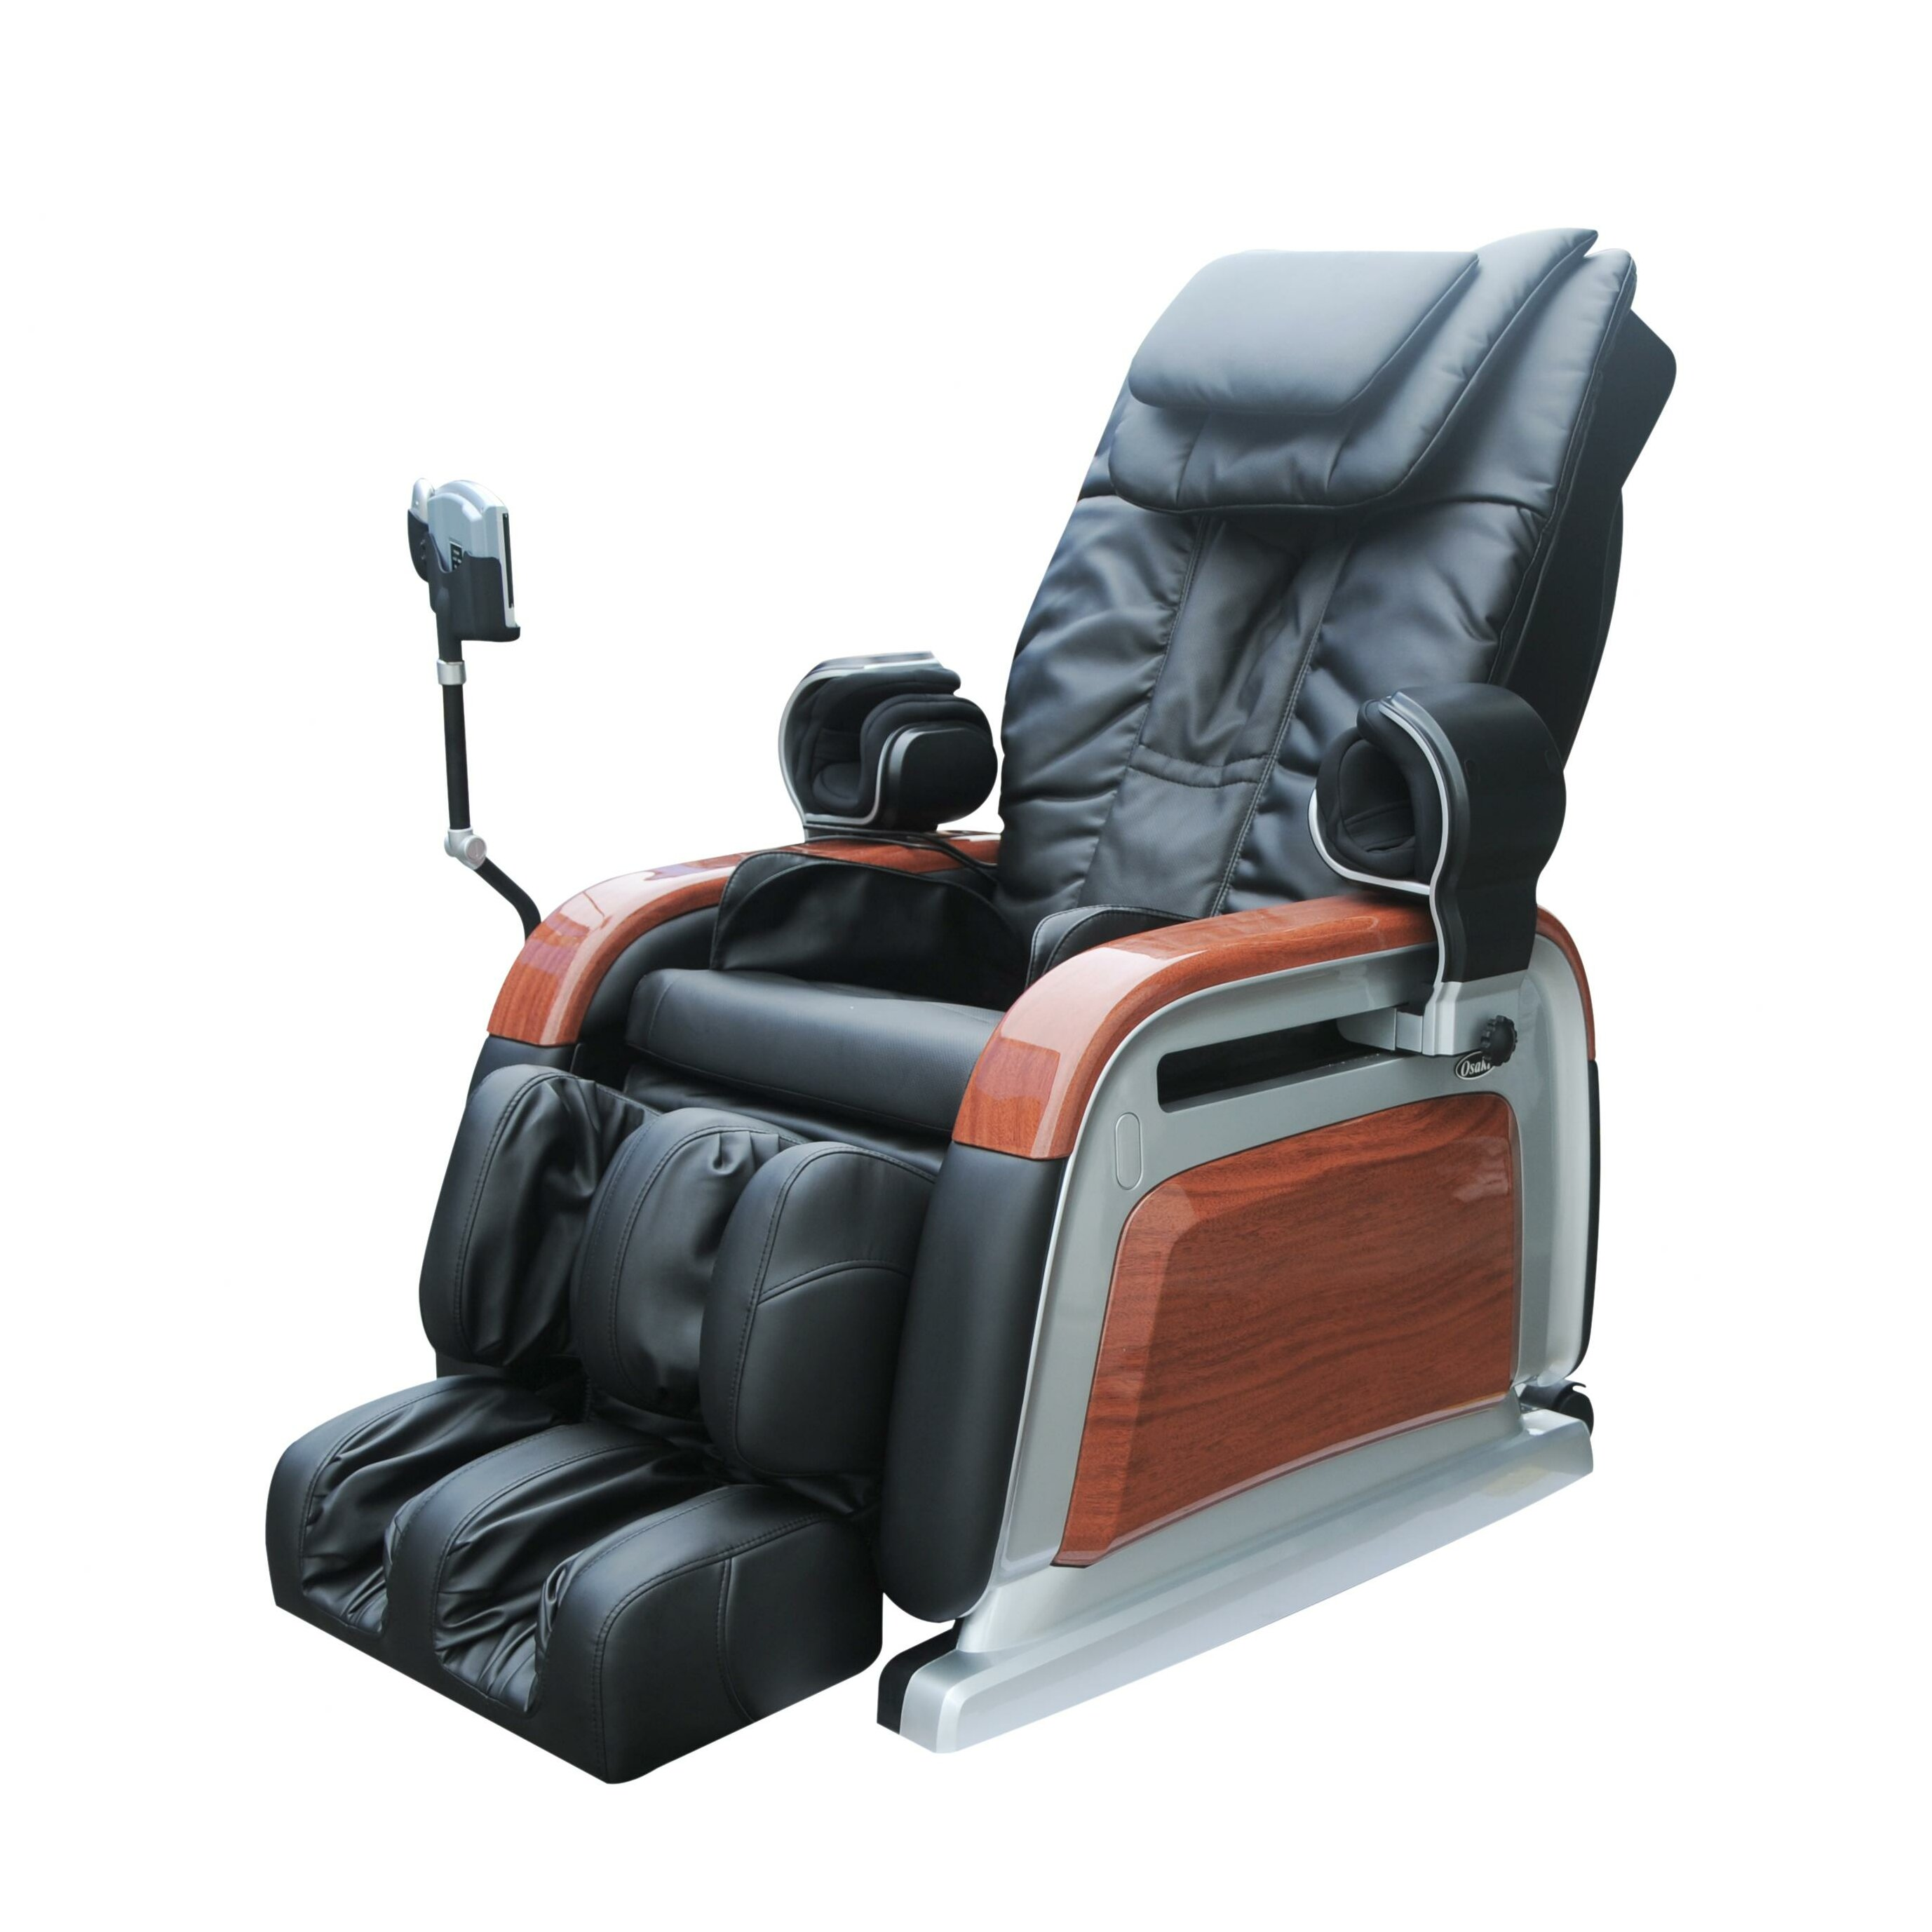 Osaki OS 2000 Heated Reclining Massage Chair amp Reviews  : OS 20002BMasage2BChair from www.wayfairsupply.com size 2755 x 2755 jpeg 525kB